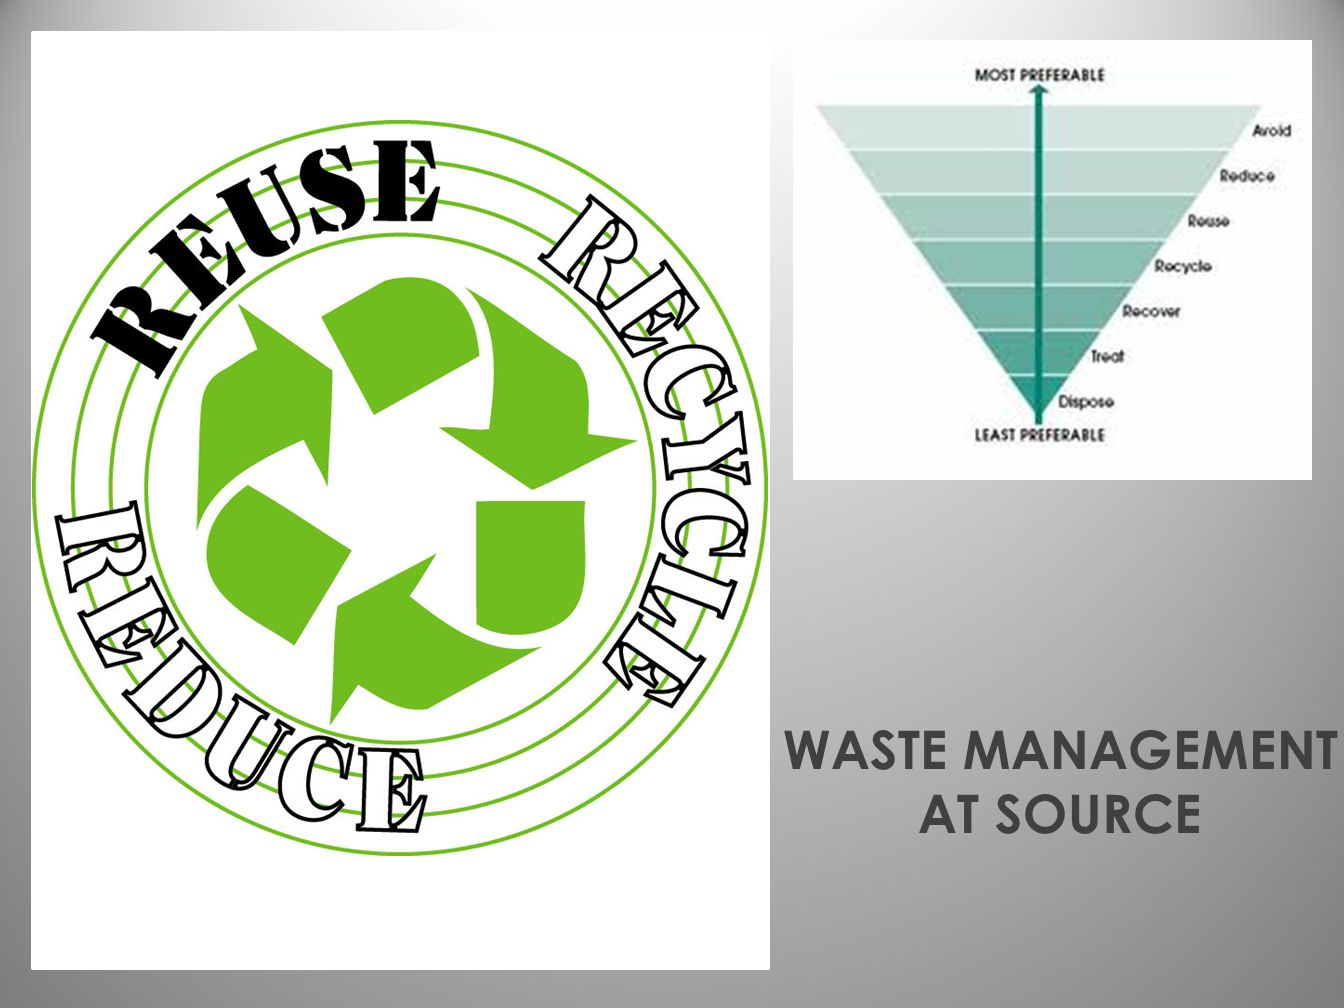 WASTE MANAGEMENT AT SOURCE